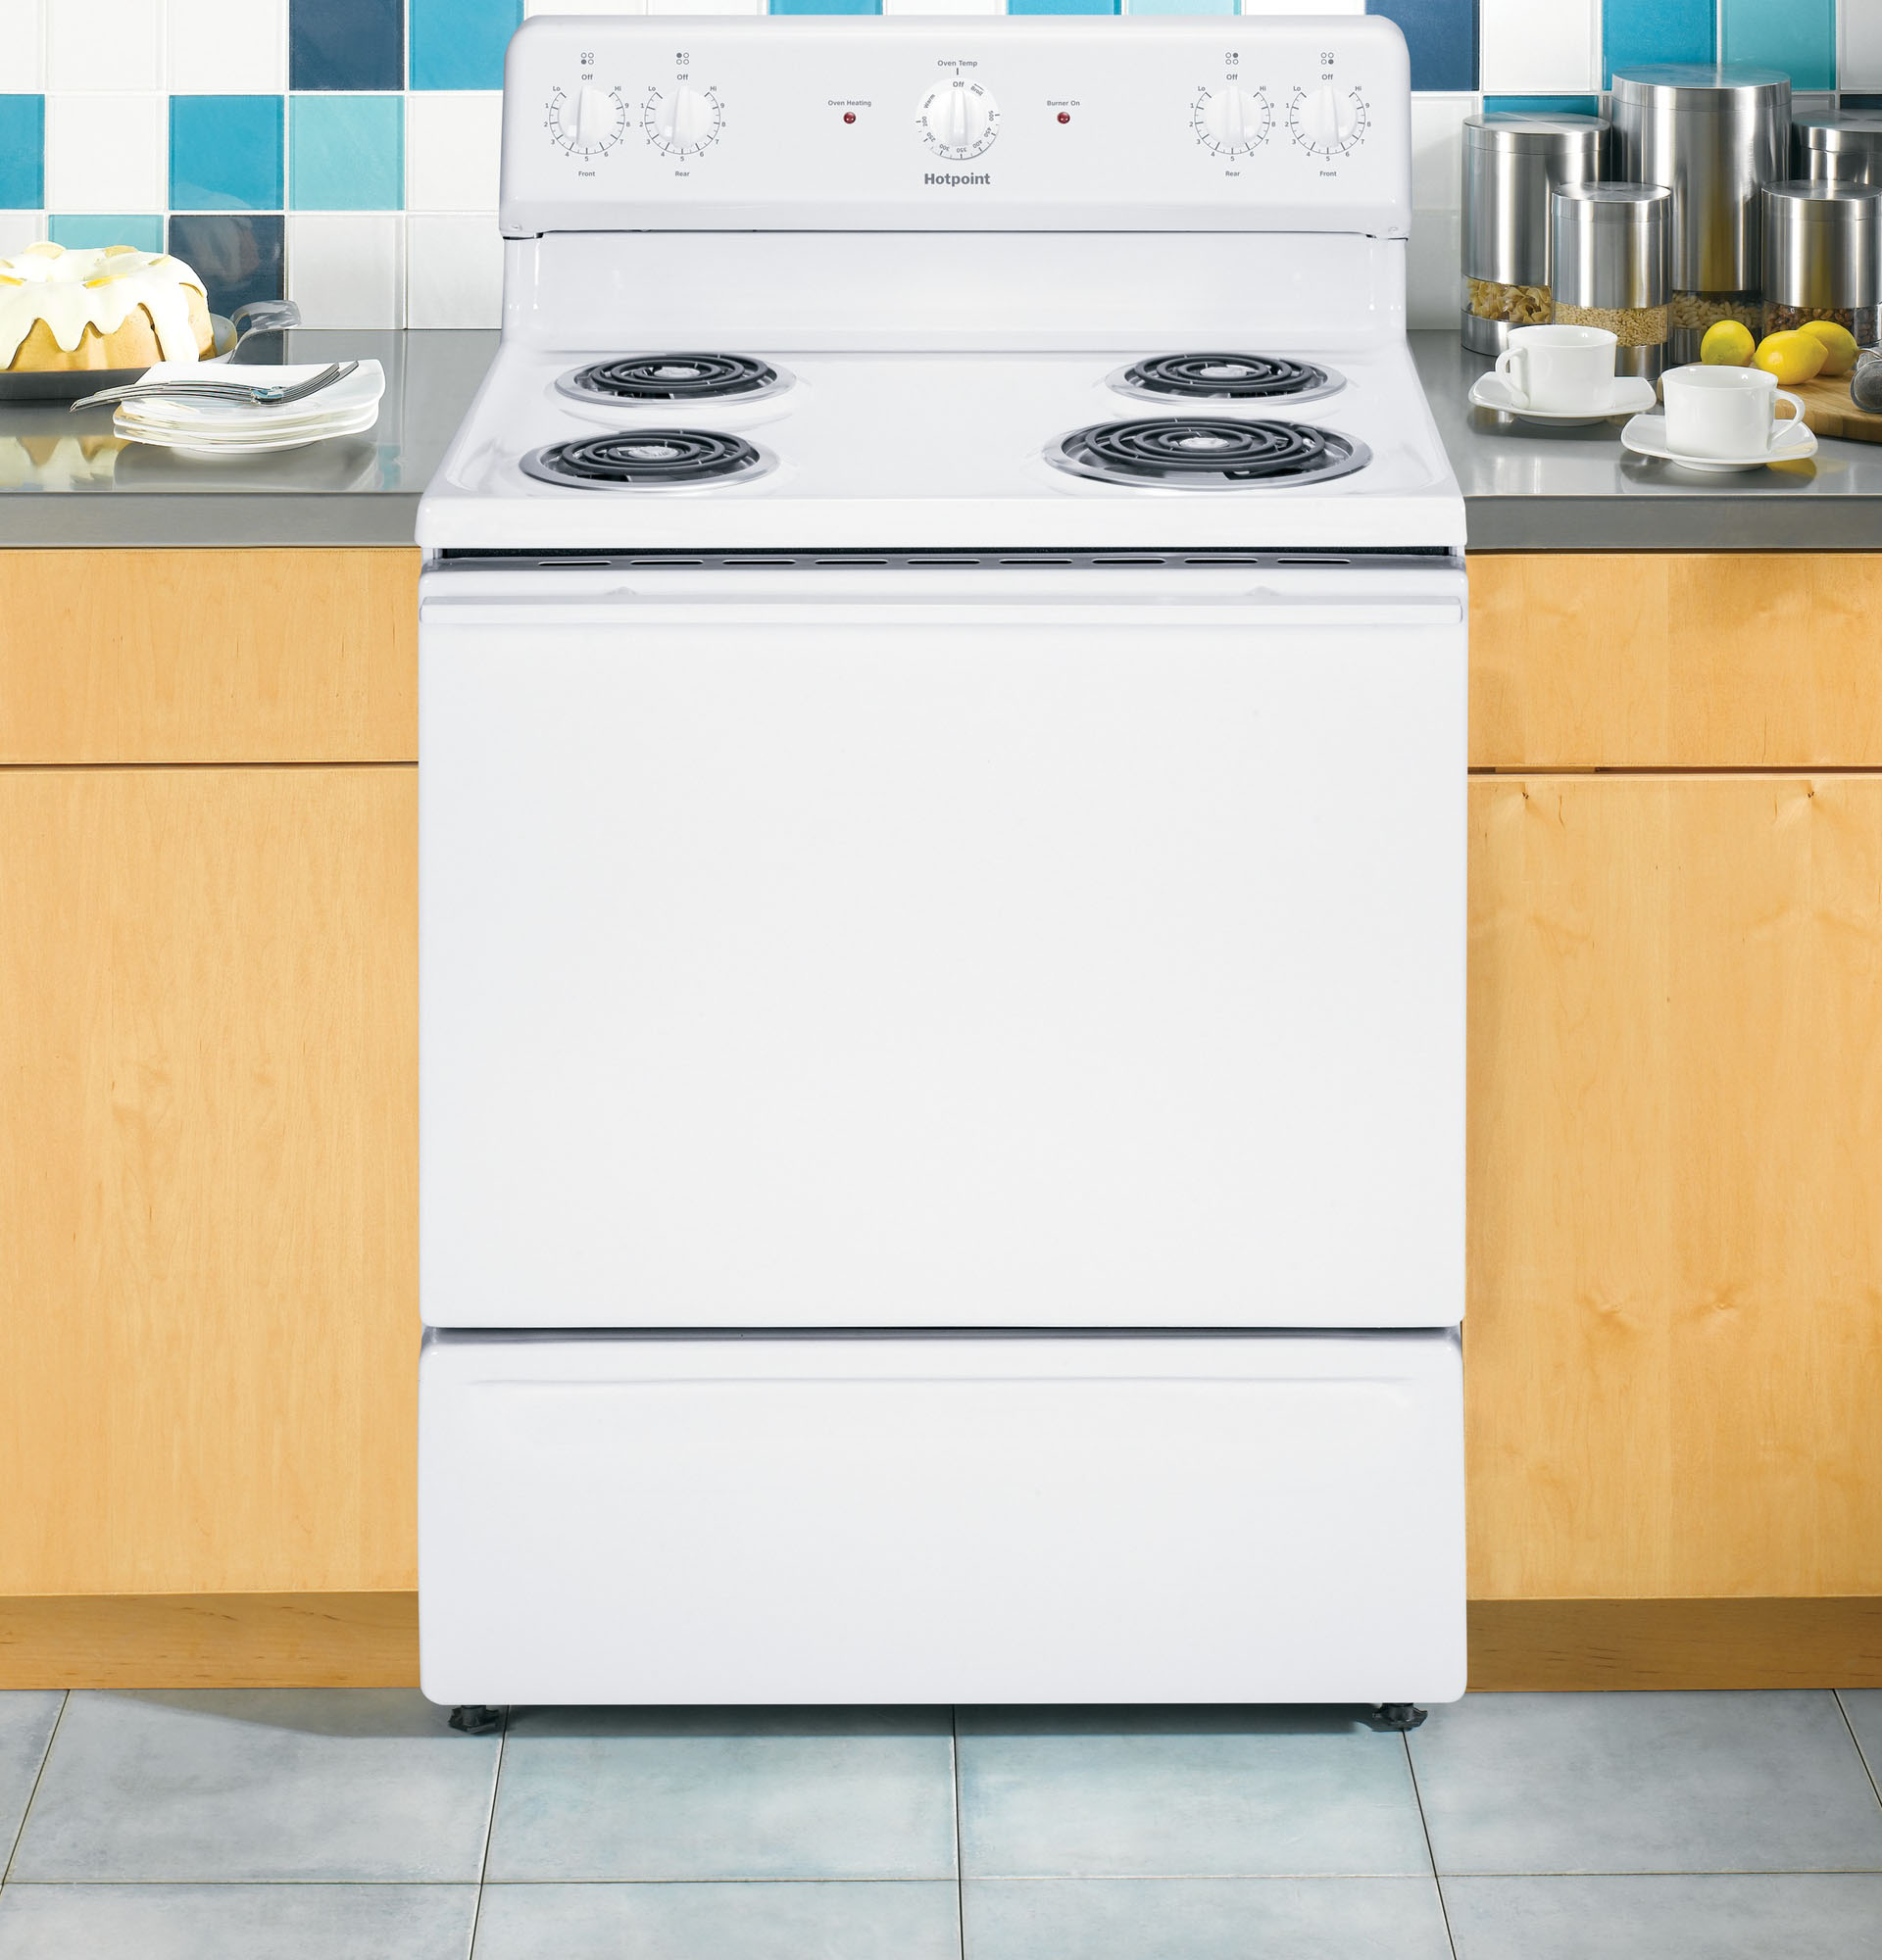 Hotpoint RB525DHWW 5.0 cu. ft. Freestanding Electric Range - White